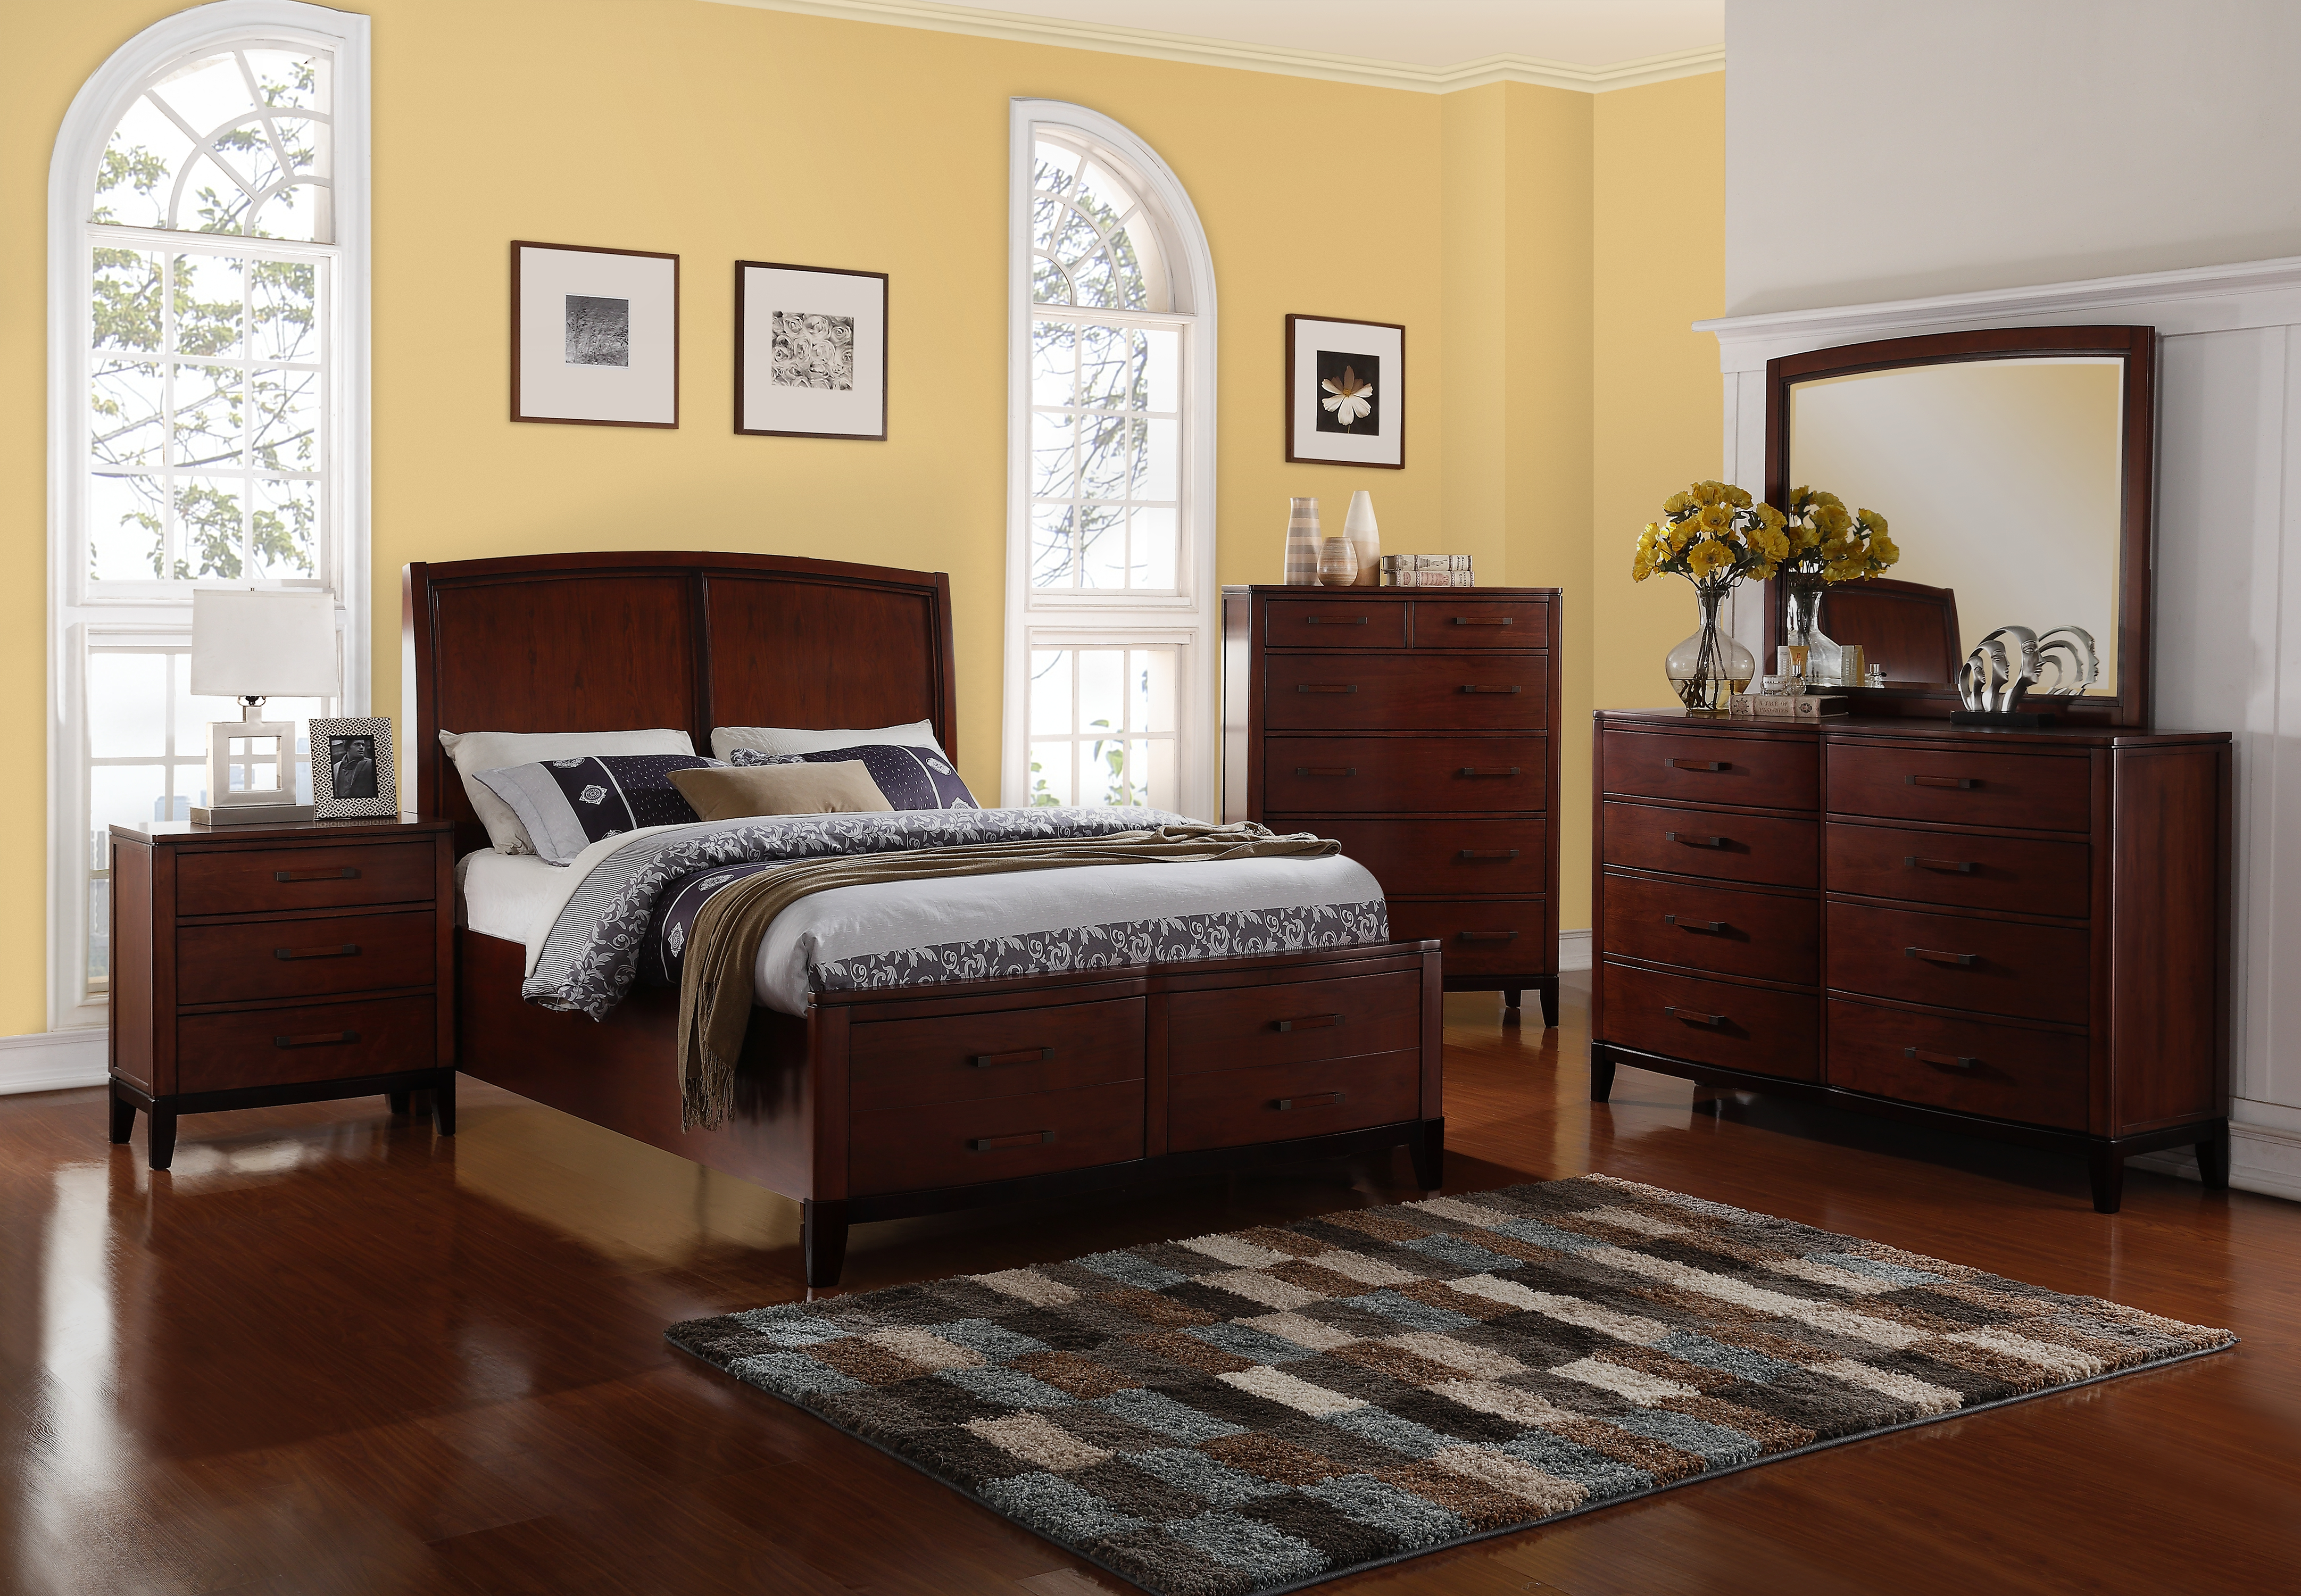 Mattress sale los angeles cassius deluxe queen sofa bed for Affordable furniture franklin la